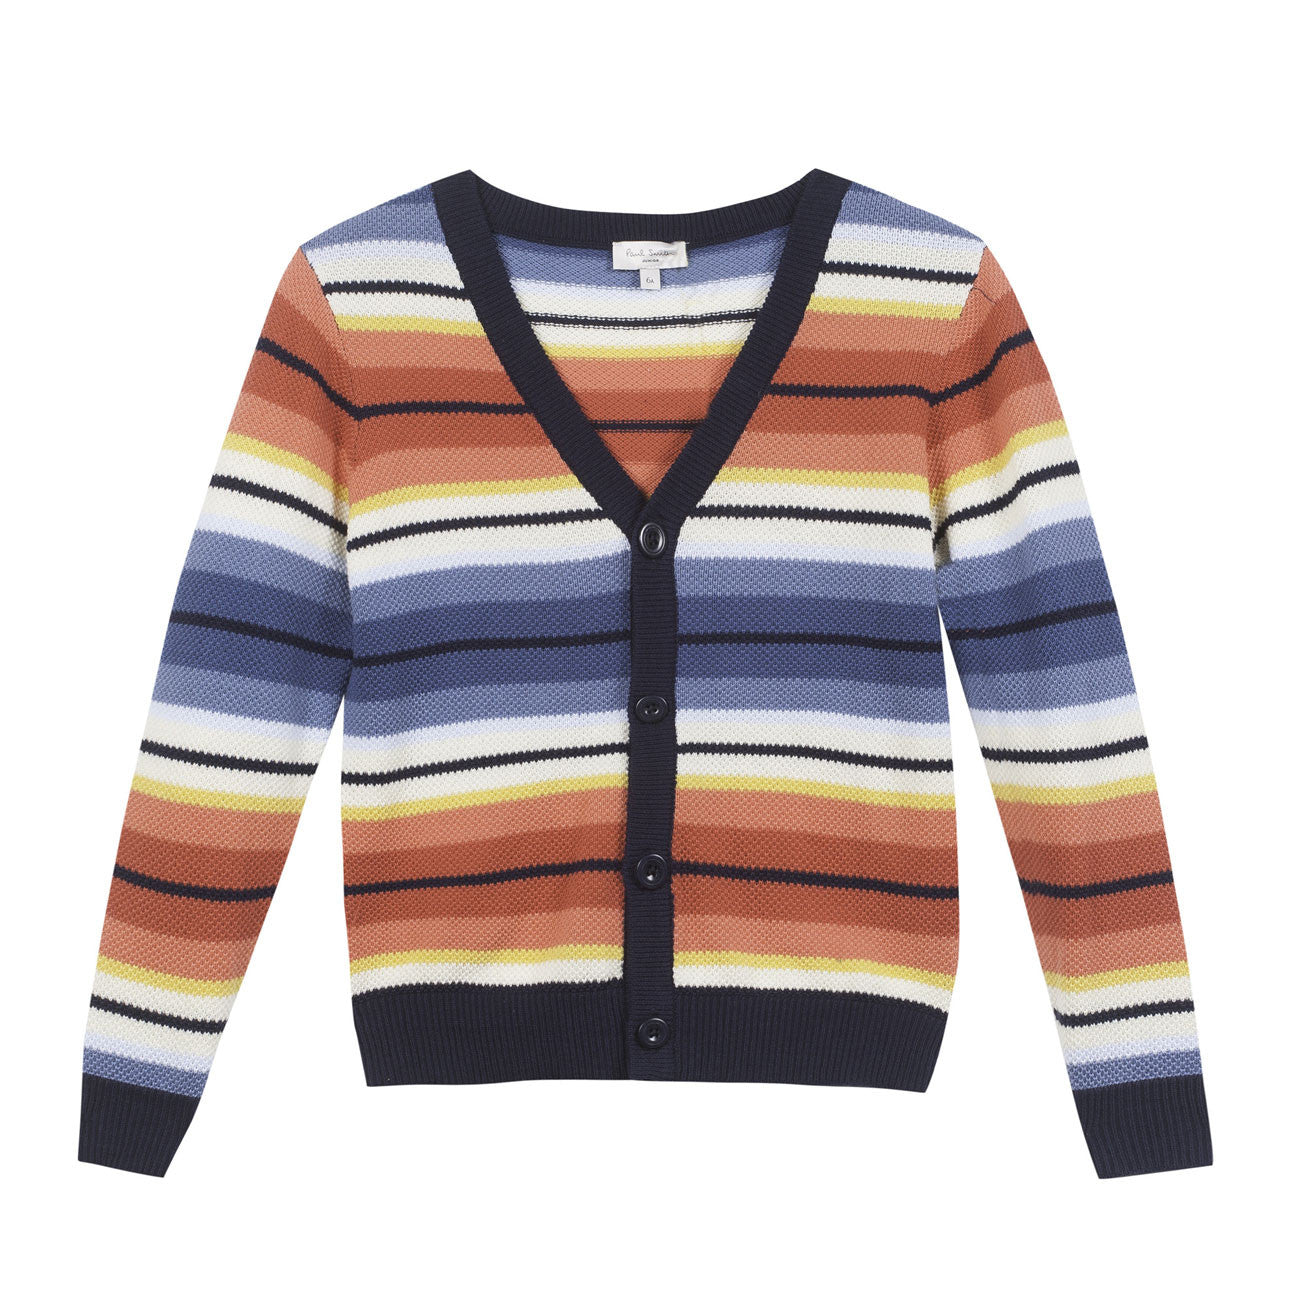 Paul Smith Navy Cardigan - Ladida